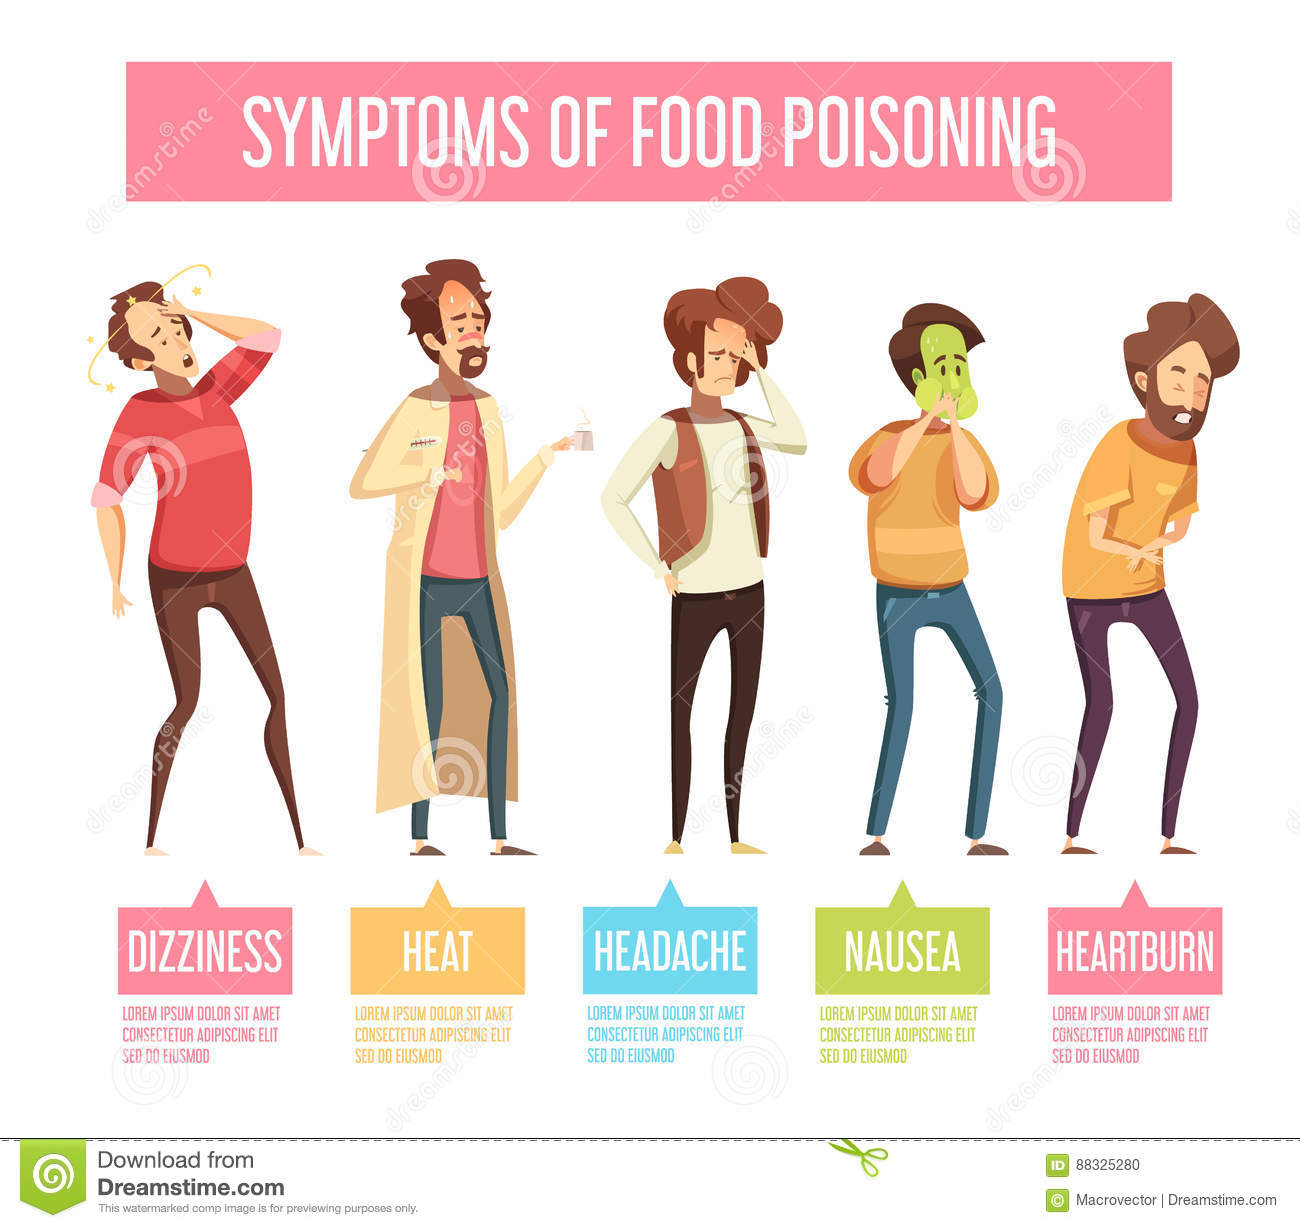 How Long Does Vomiting Last Food Poisoning